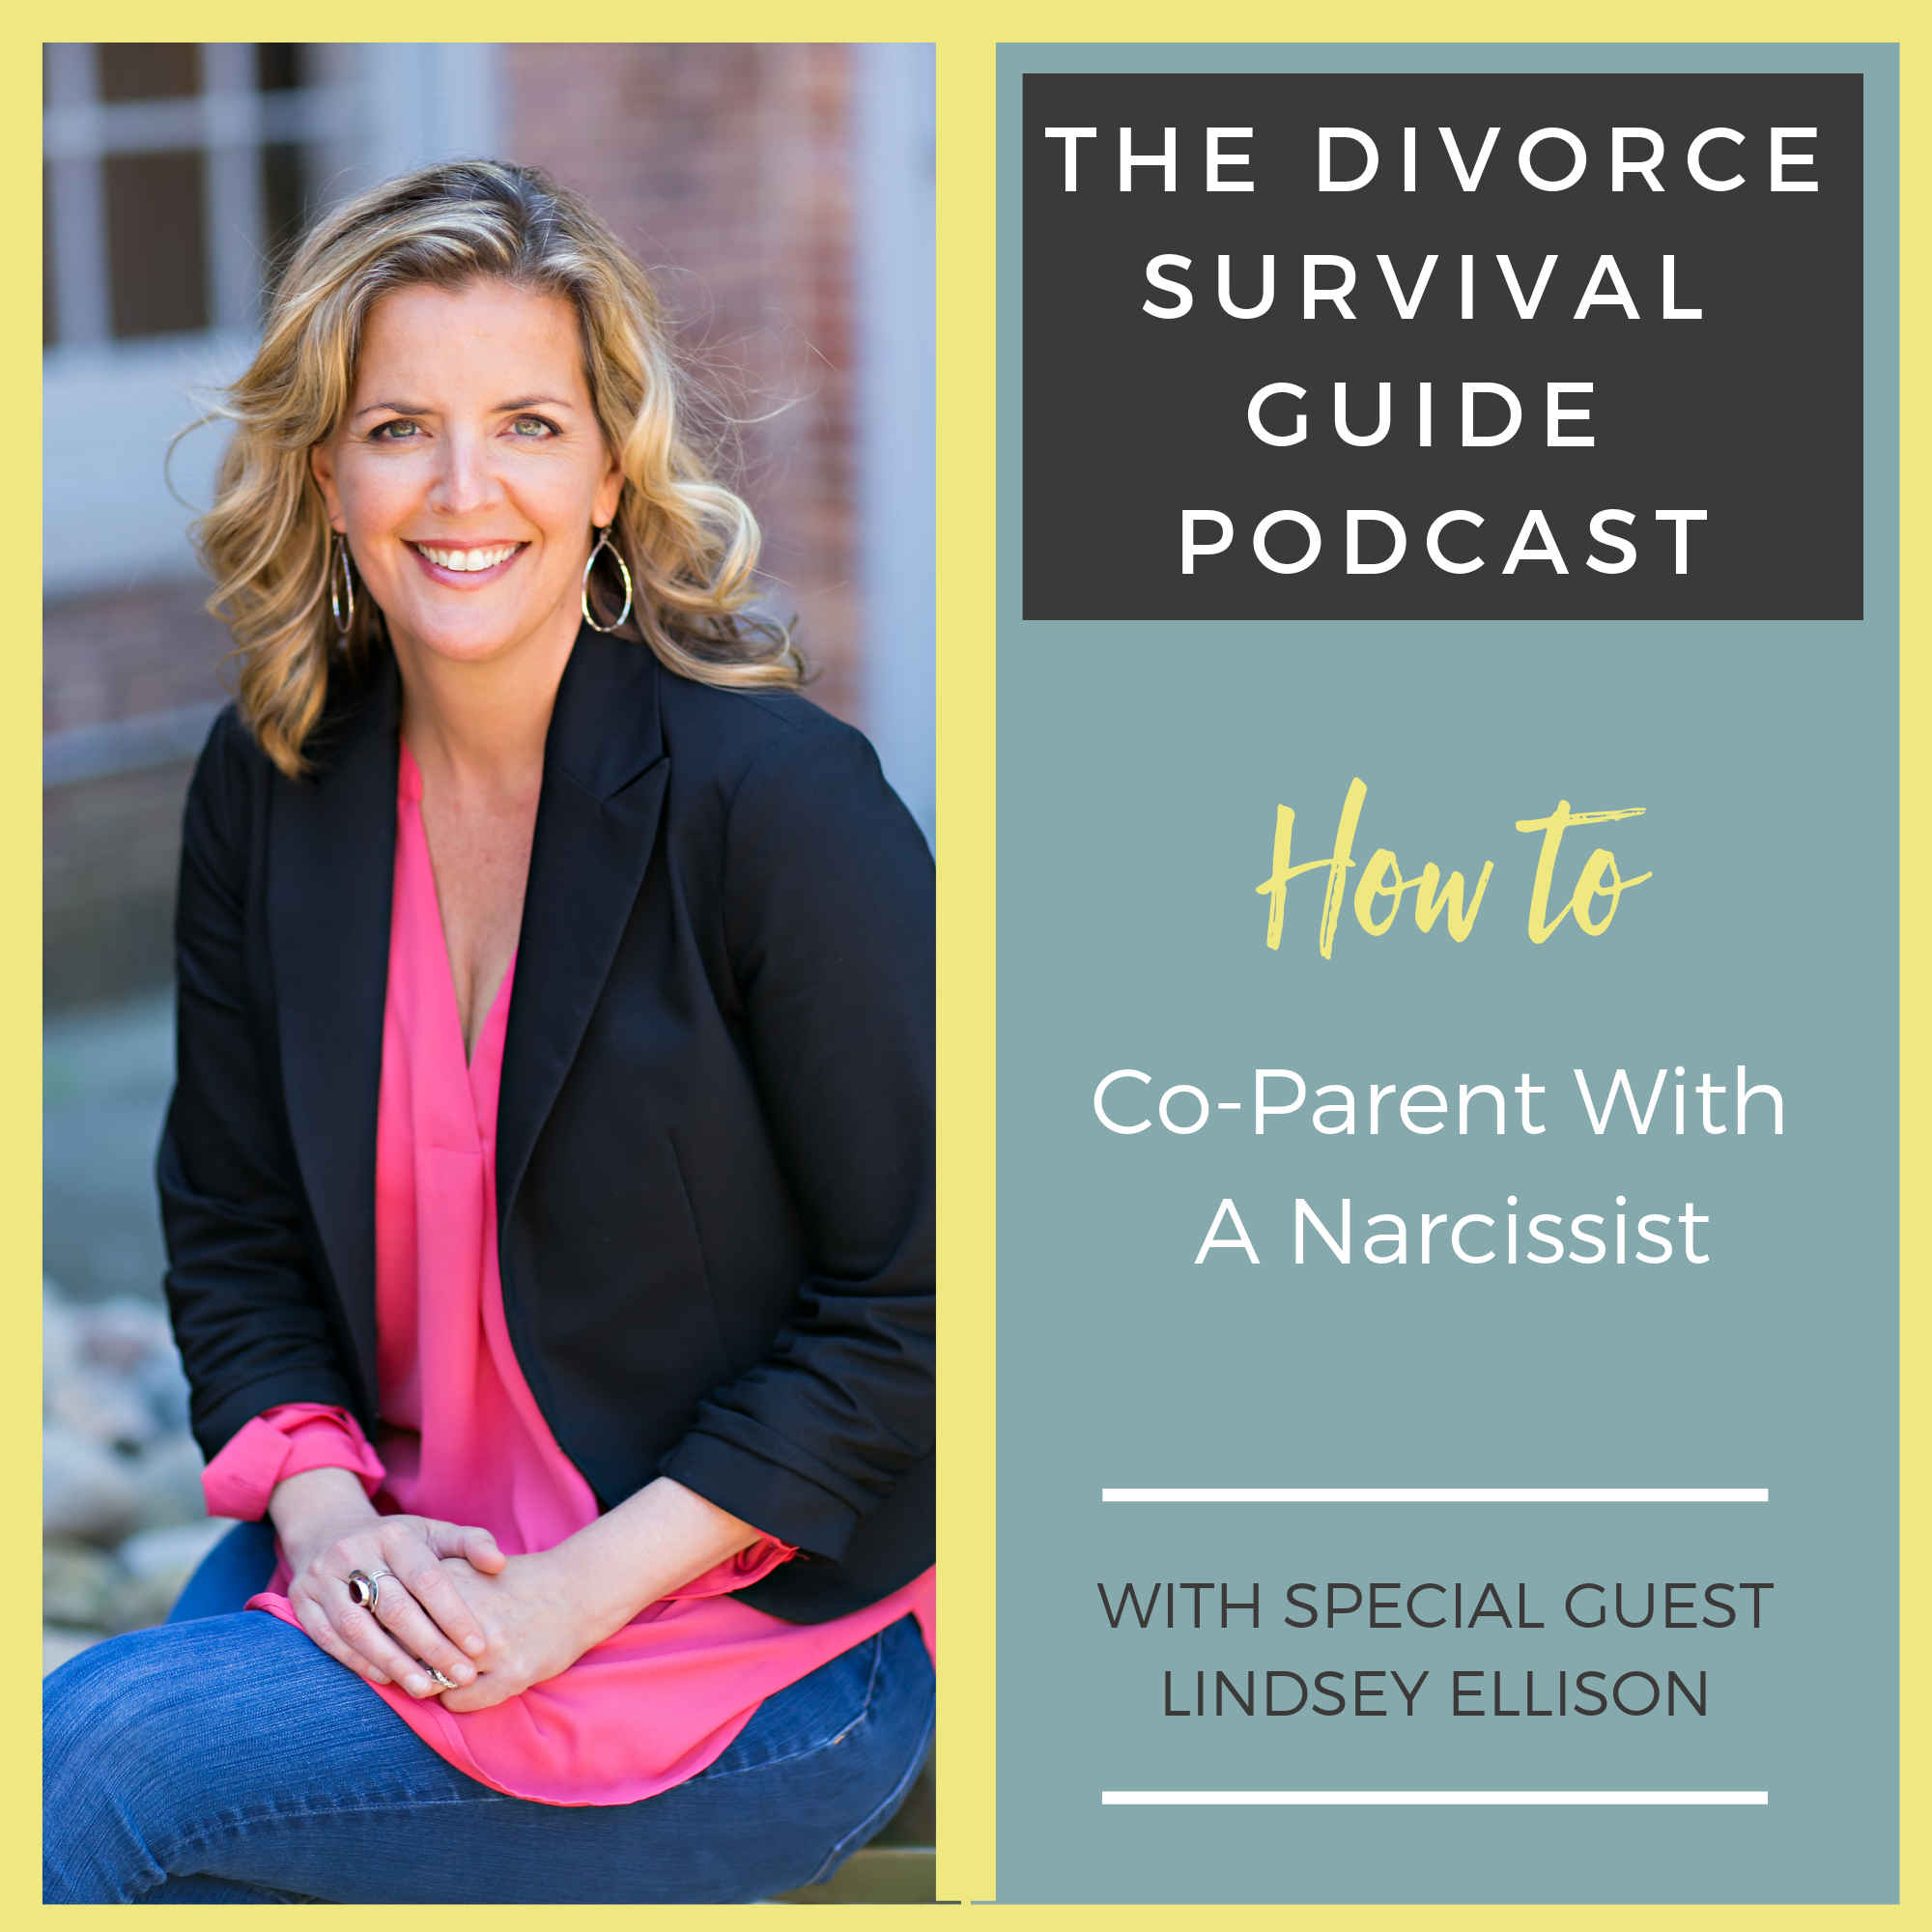 The Divorce Survival Guide Podcast - [Rebroadcast] How To Co-Parent with a Narcissist with Lindsey Ellison